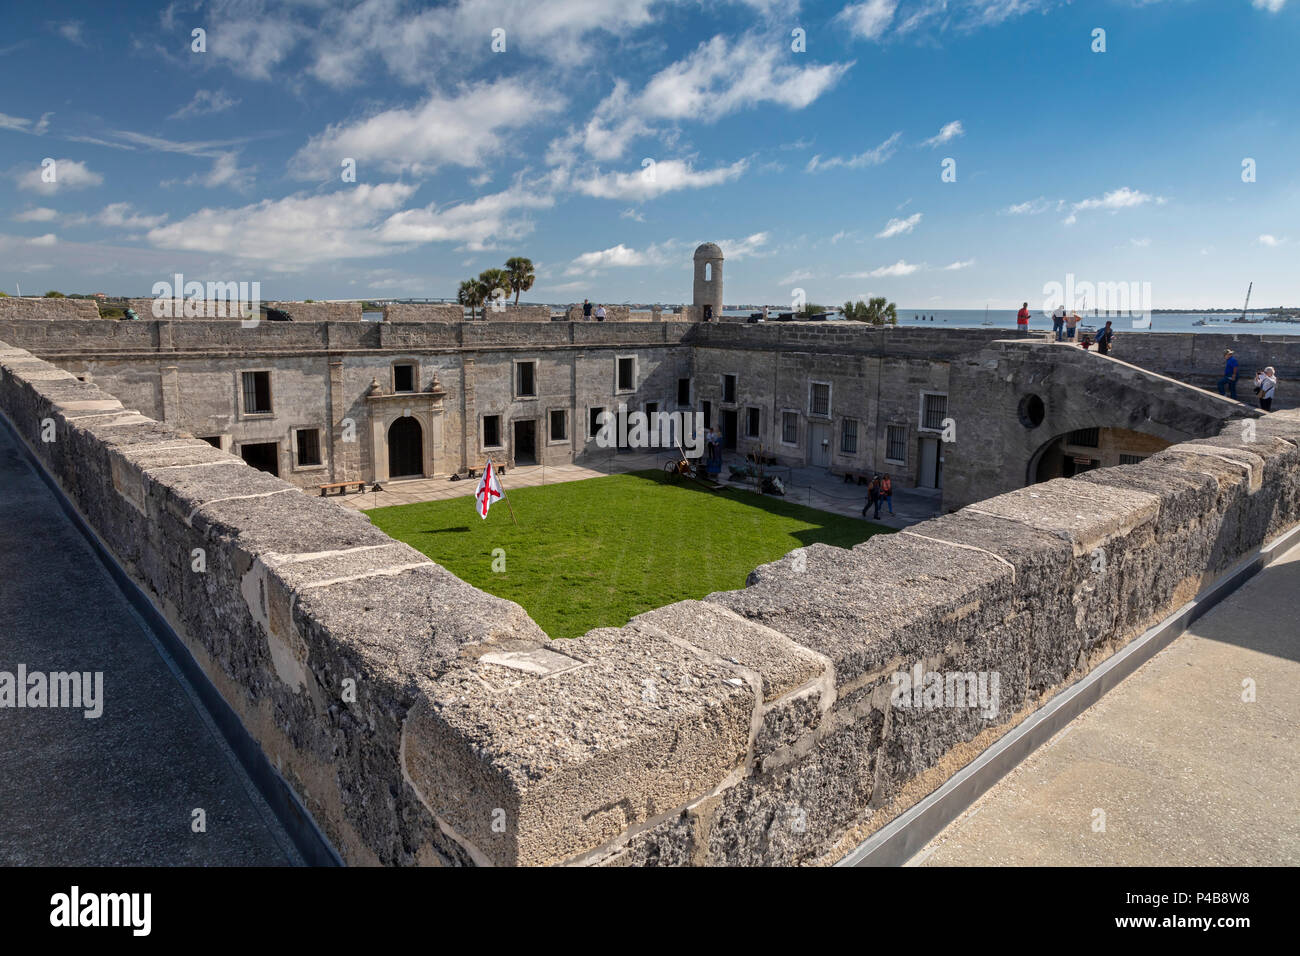 St. Augustine, Florida - Castillo de San Marcos National Monument. The Spanish built the fort in the late 17th century. It was later occupied by Briti - Stock Image